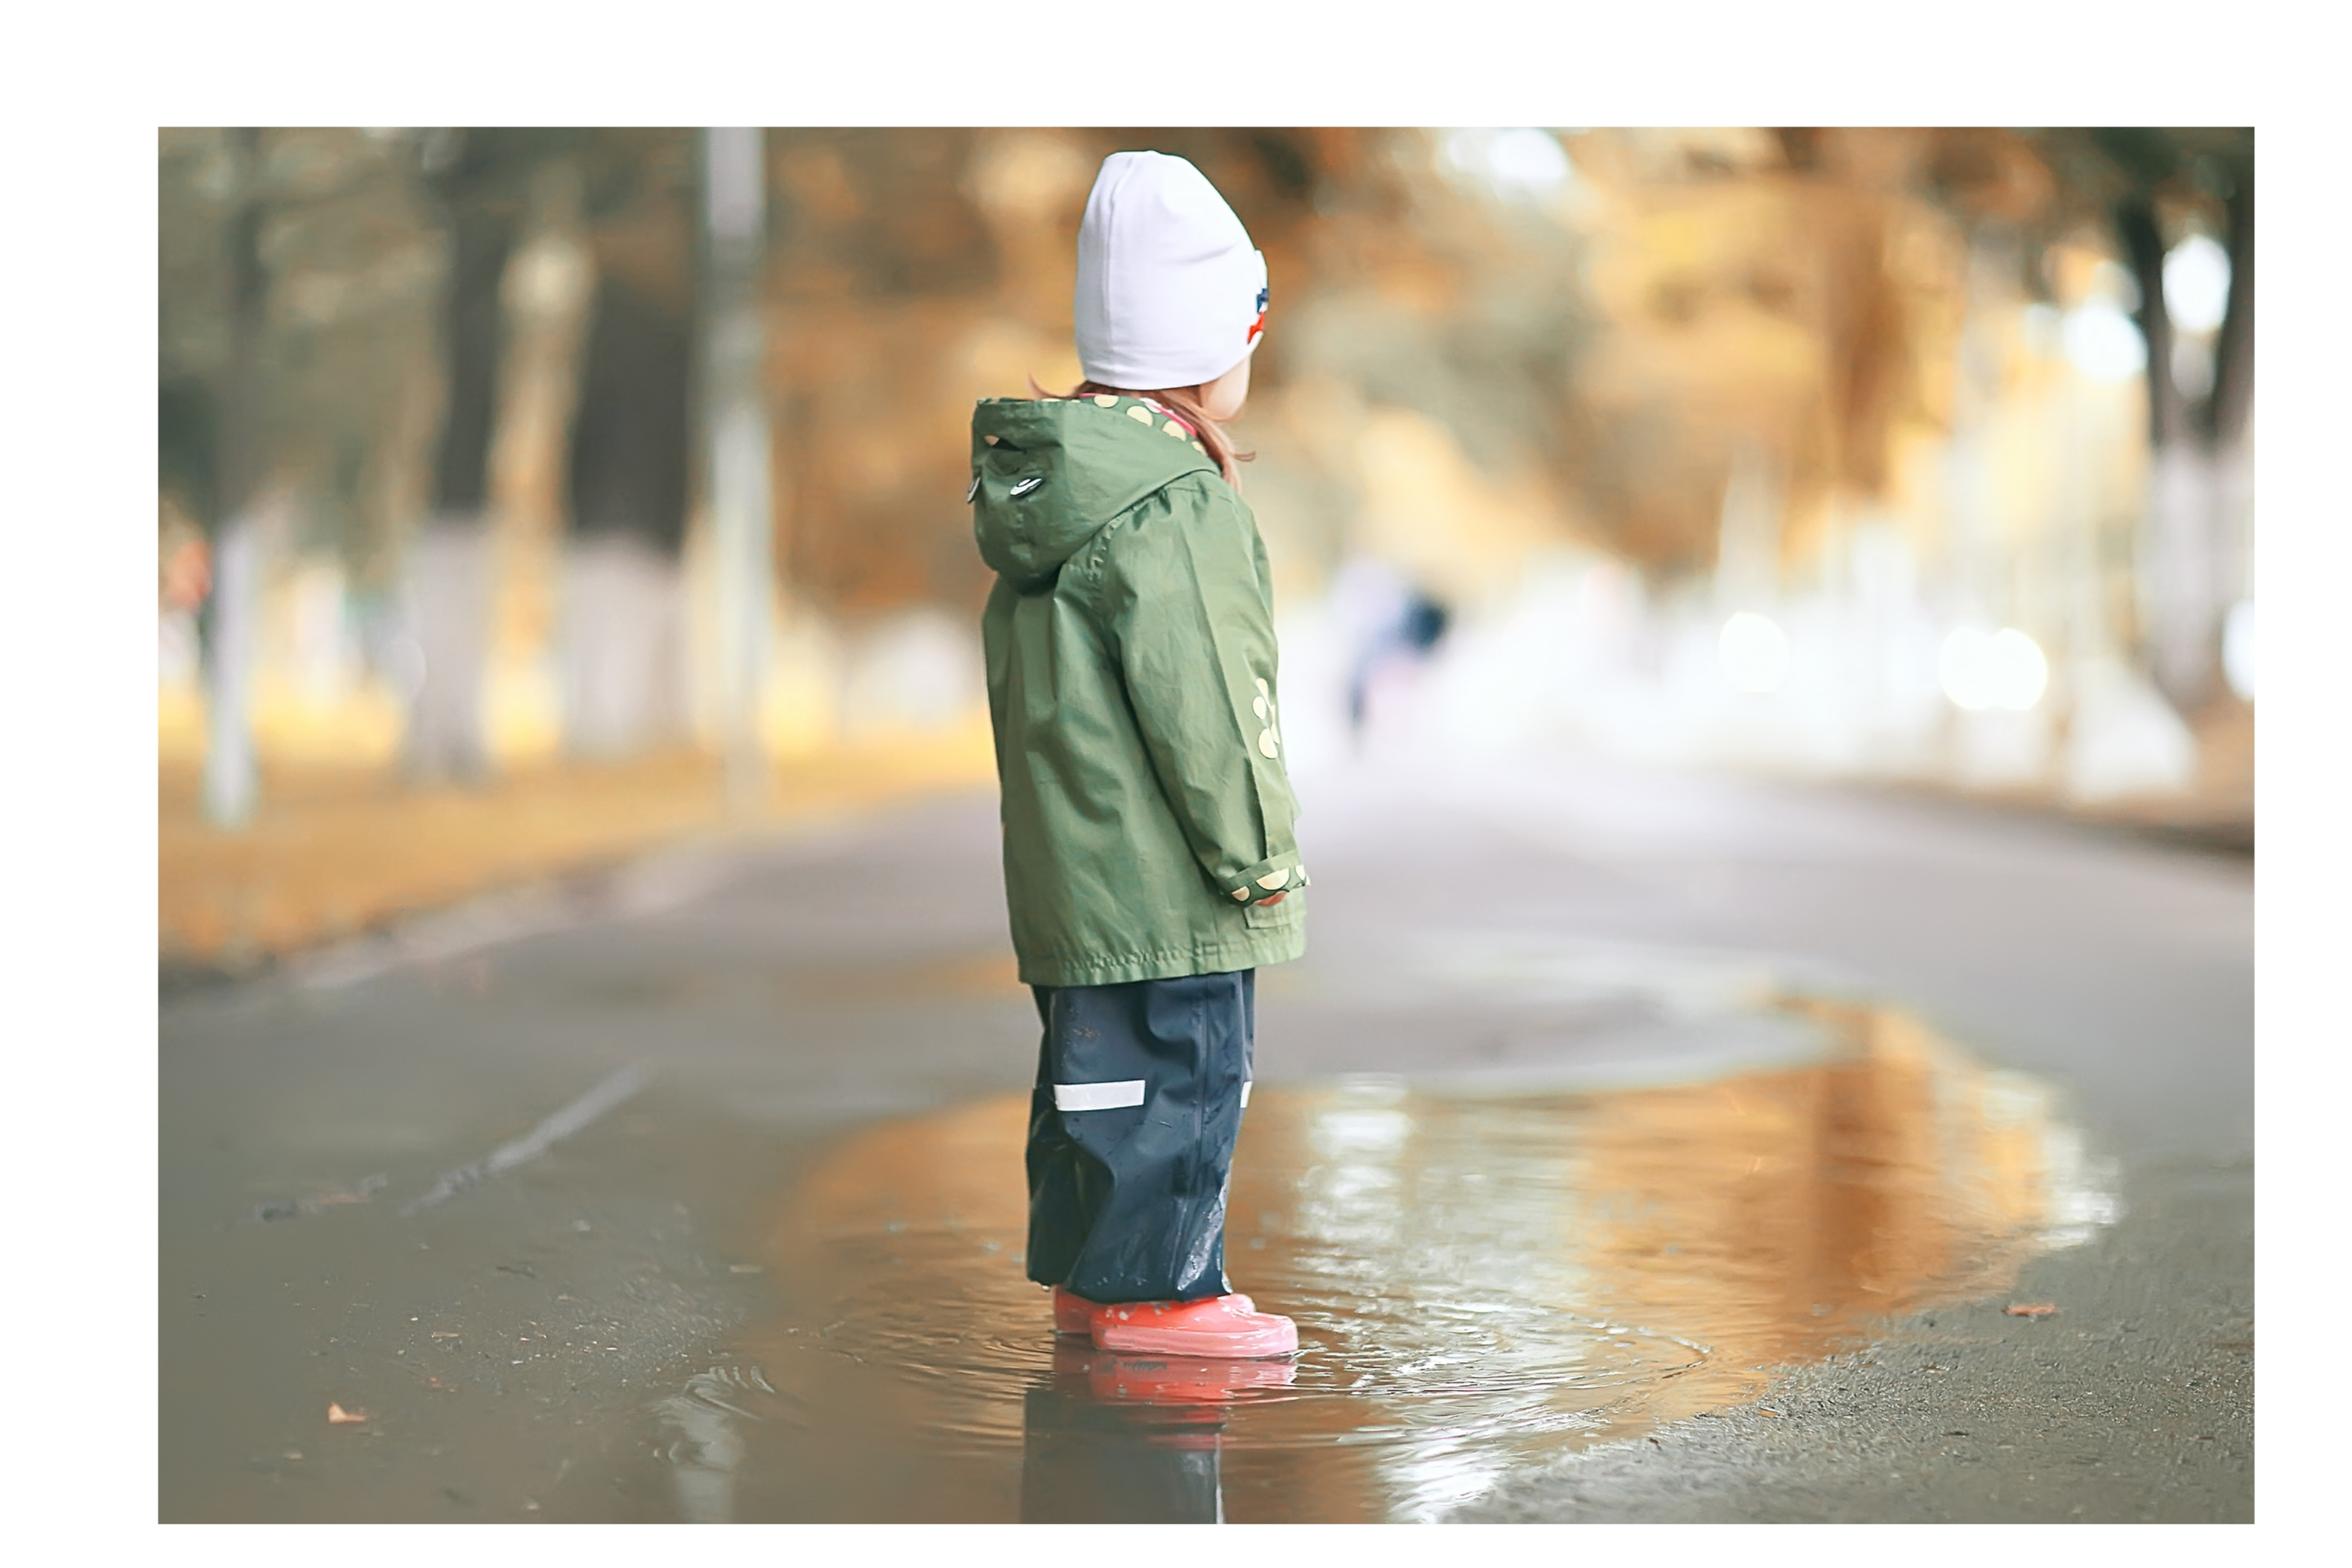 sad kid standing in puddle